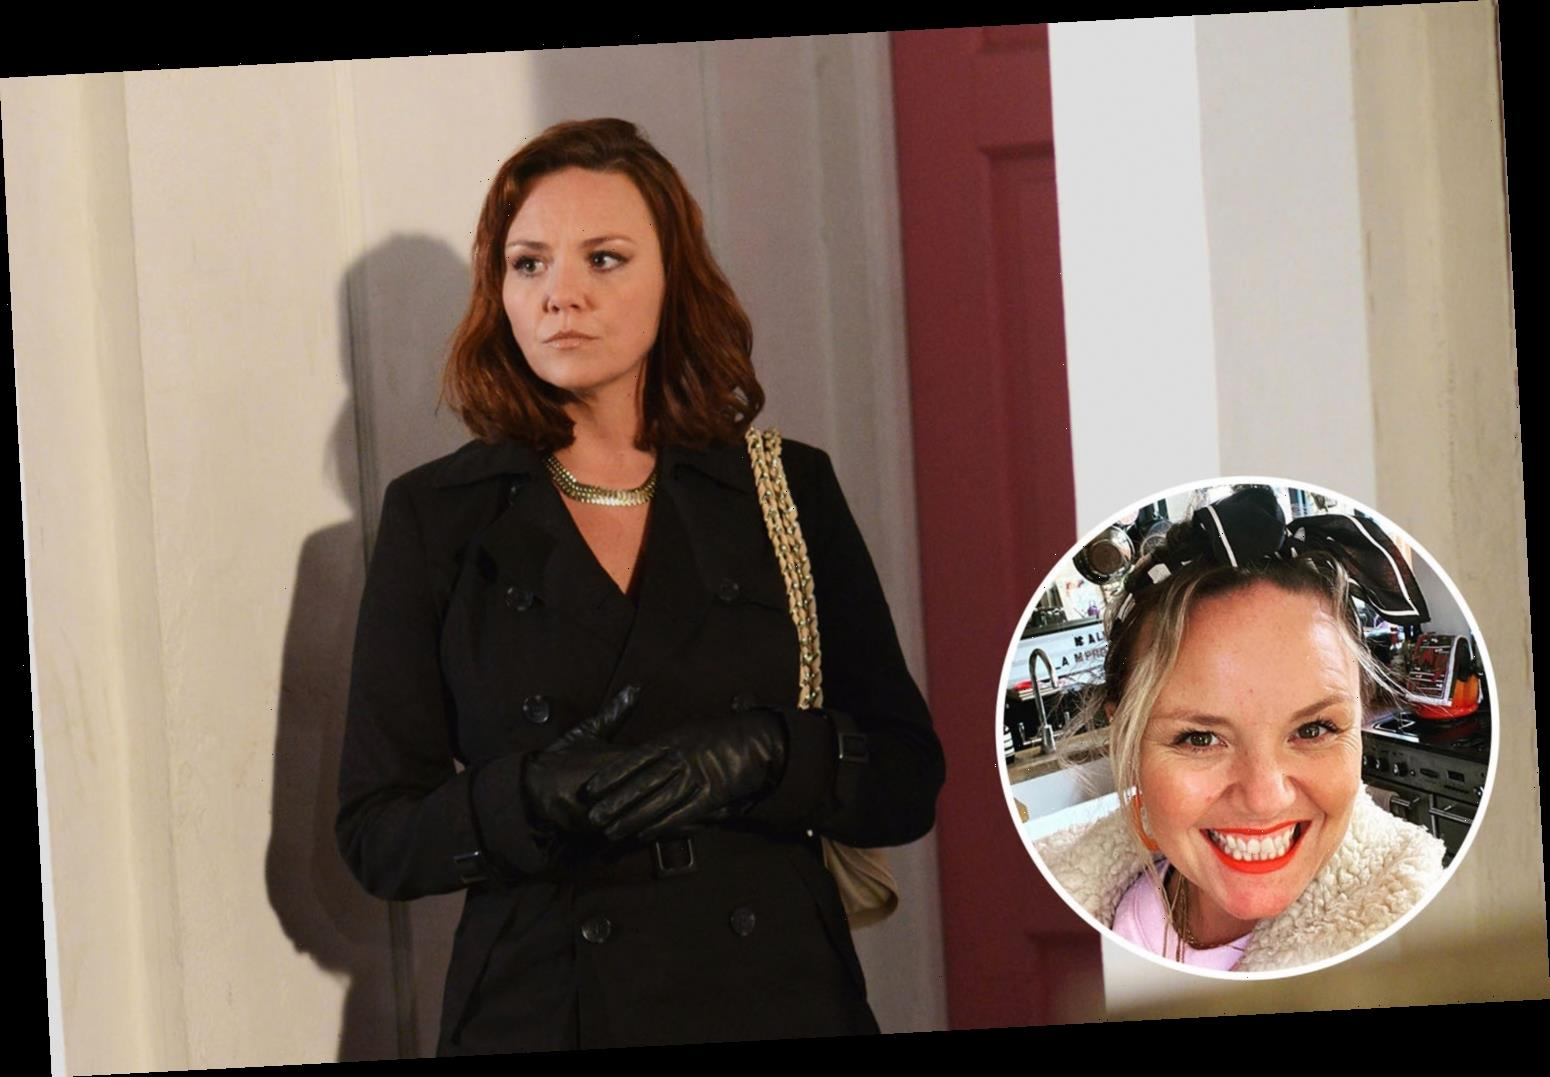 EastEnders Charlie Brooks releasing her own line of sex toys – and one's named The Butcher after Janine